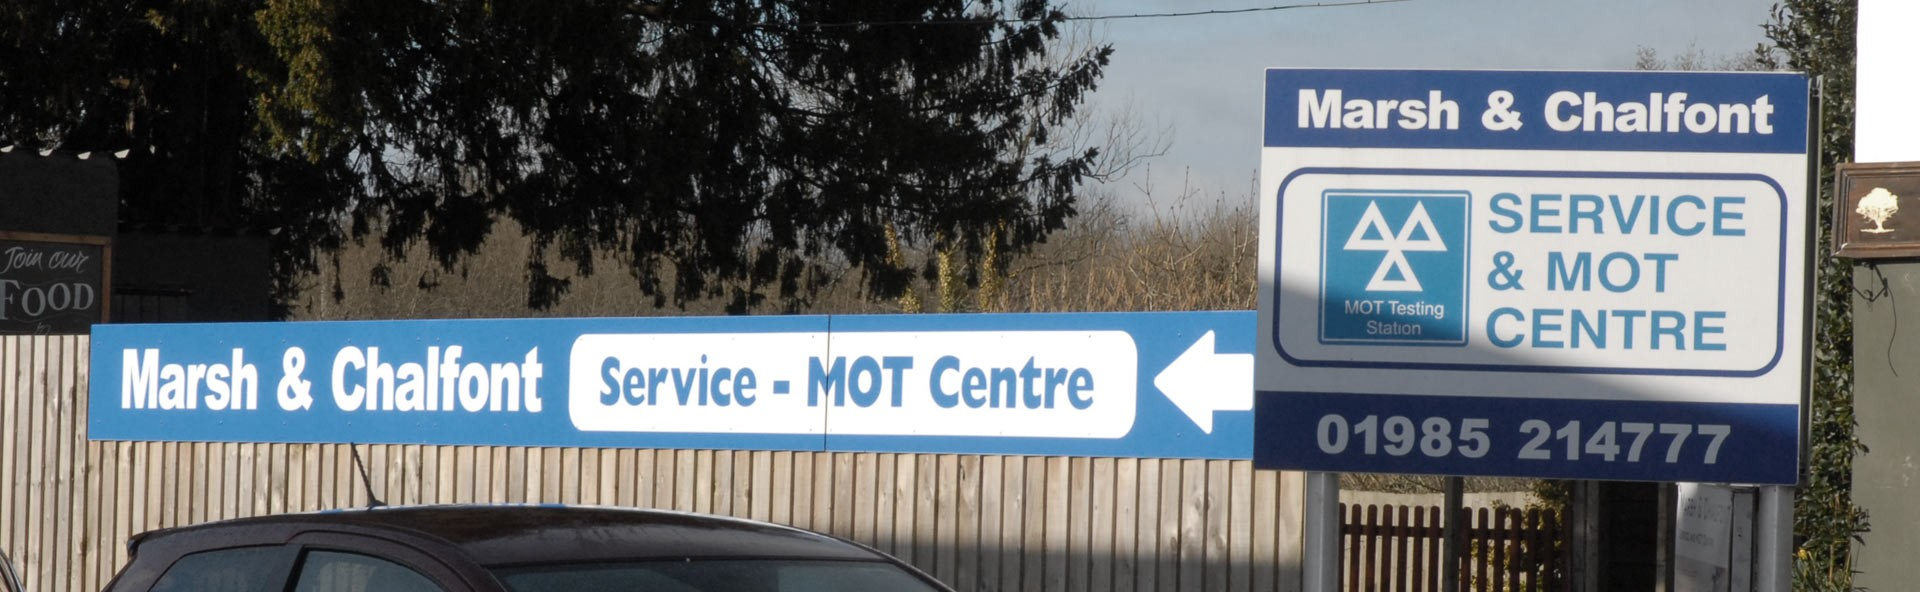 Car service and MOT warminster